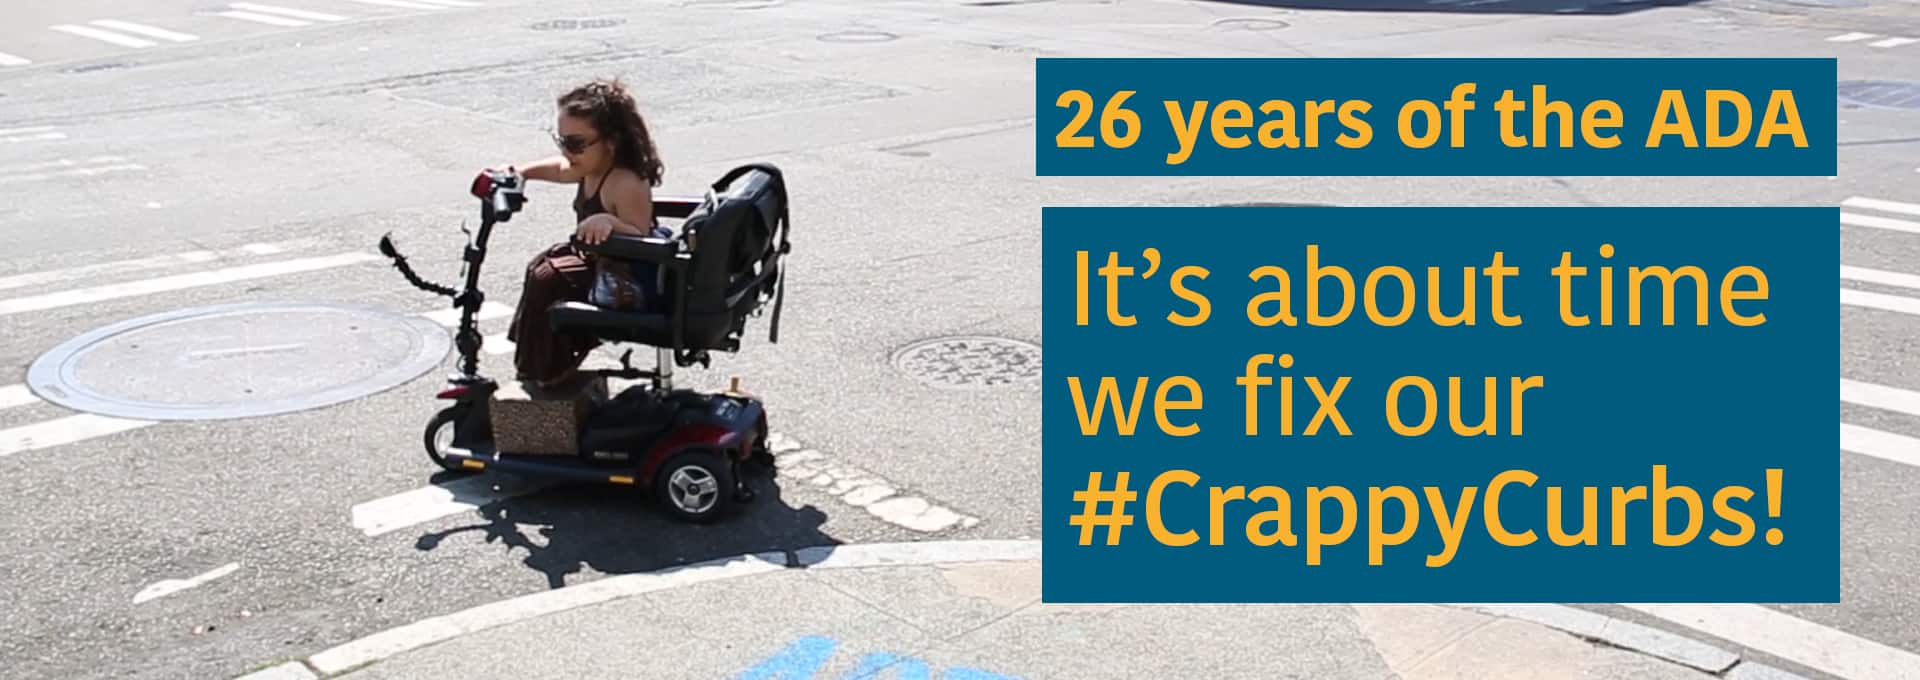 26 years of the ADA. It's about time we fix our #CrappyCurbs